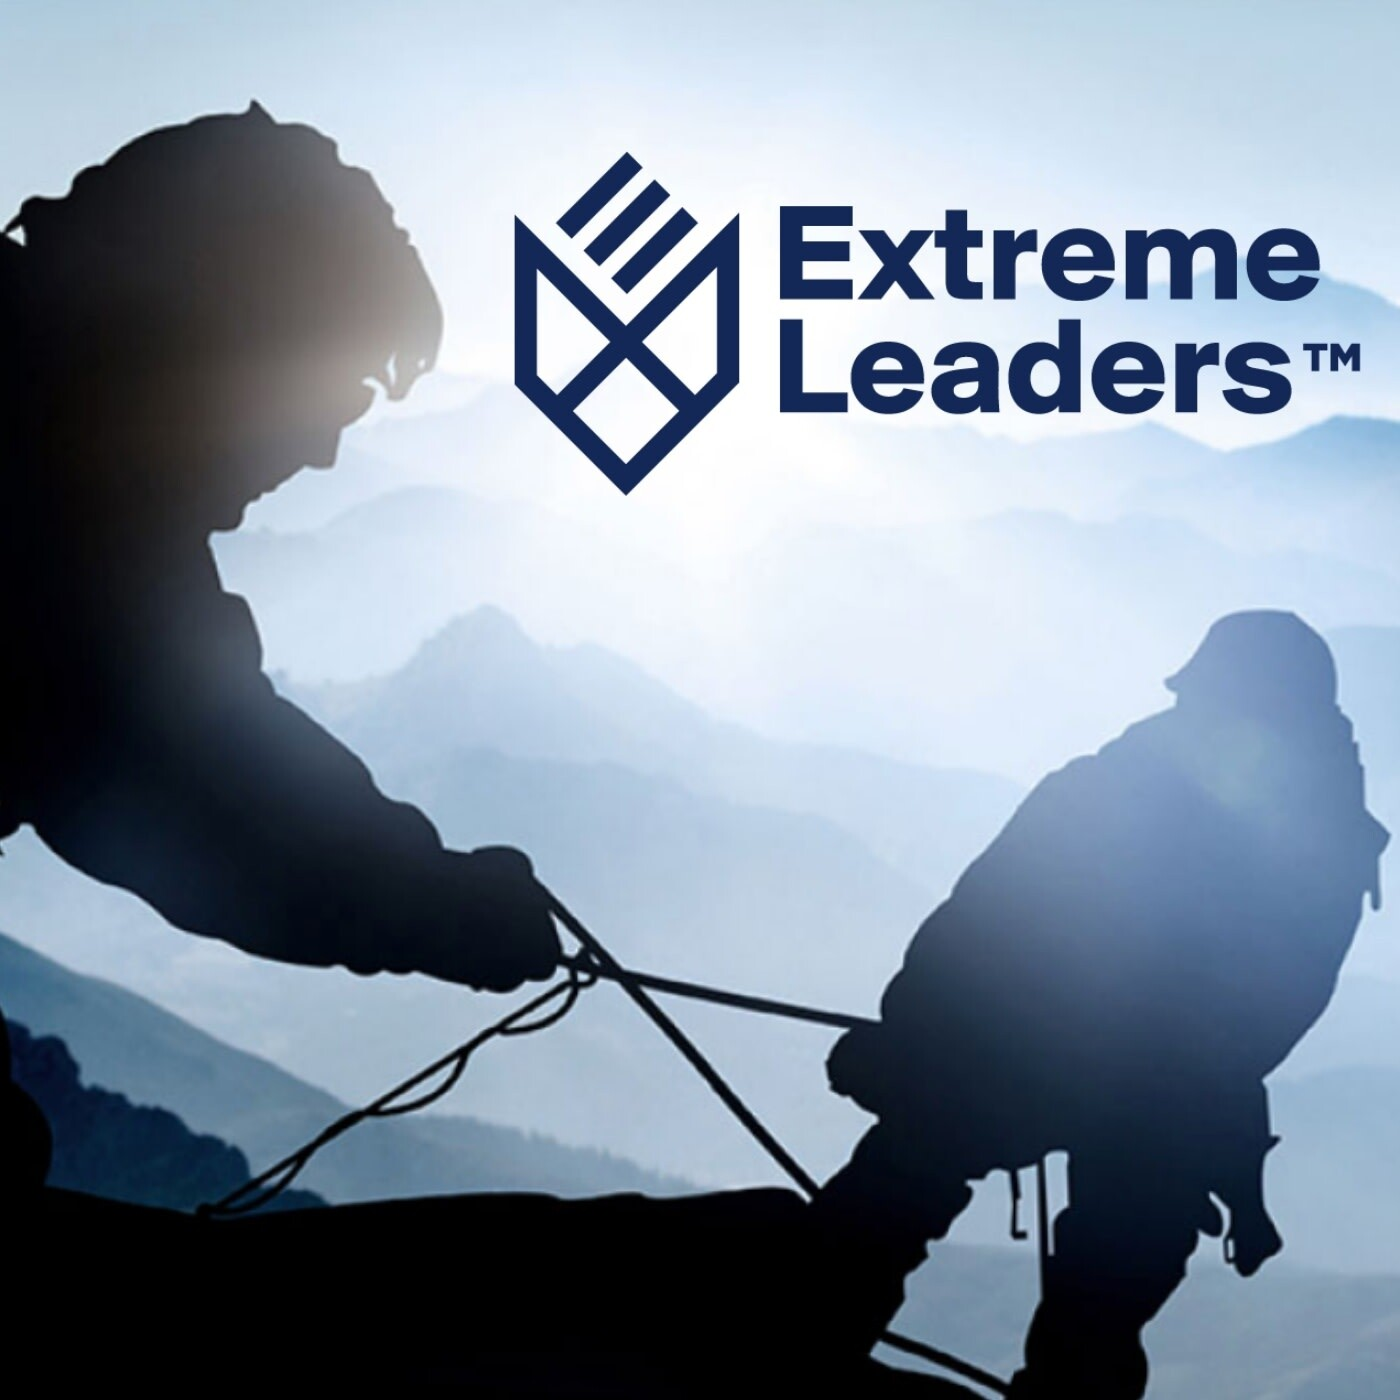 The Extreme Leaders